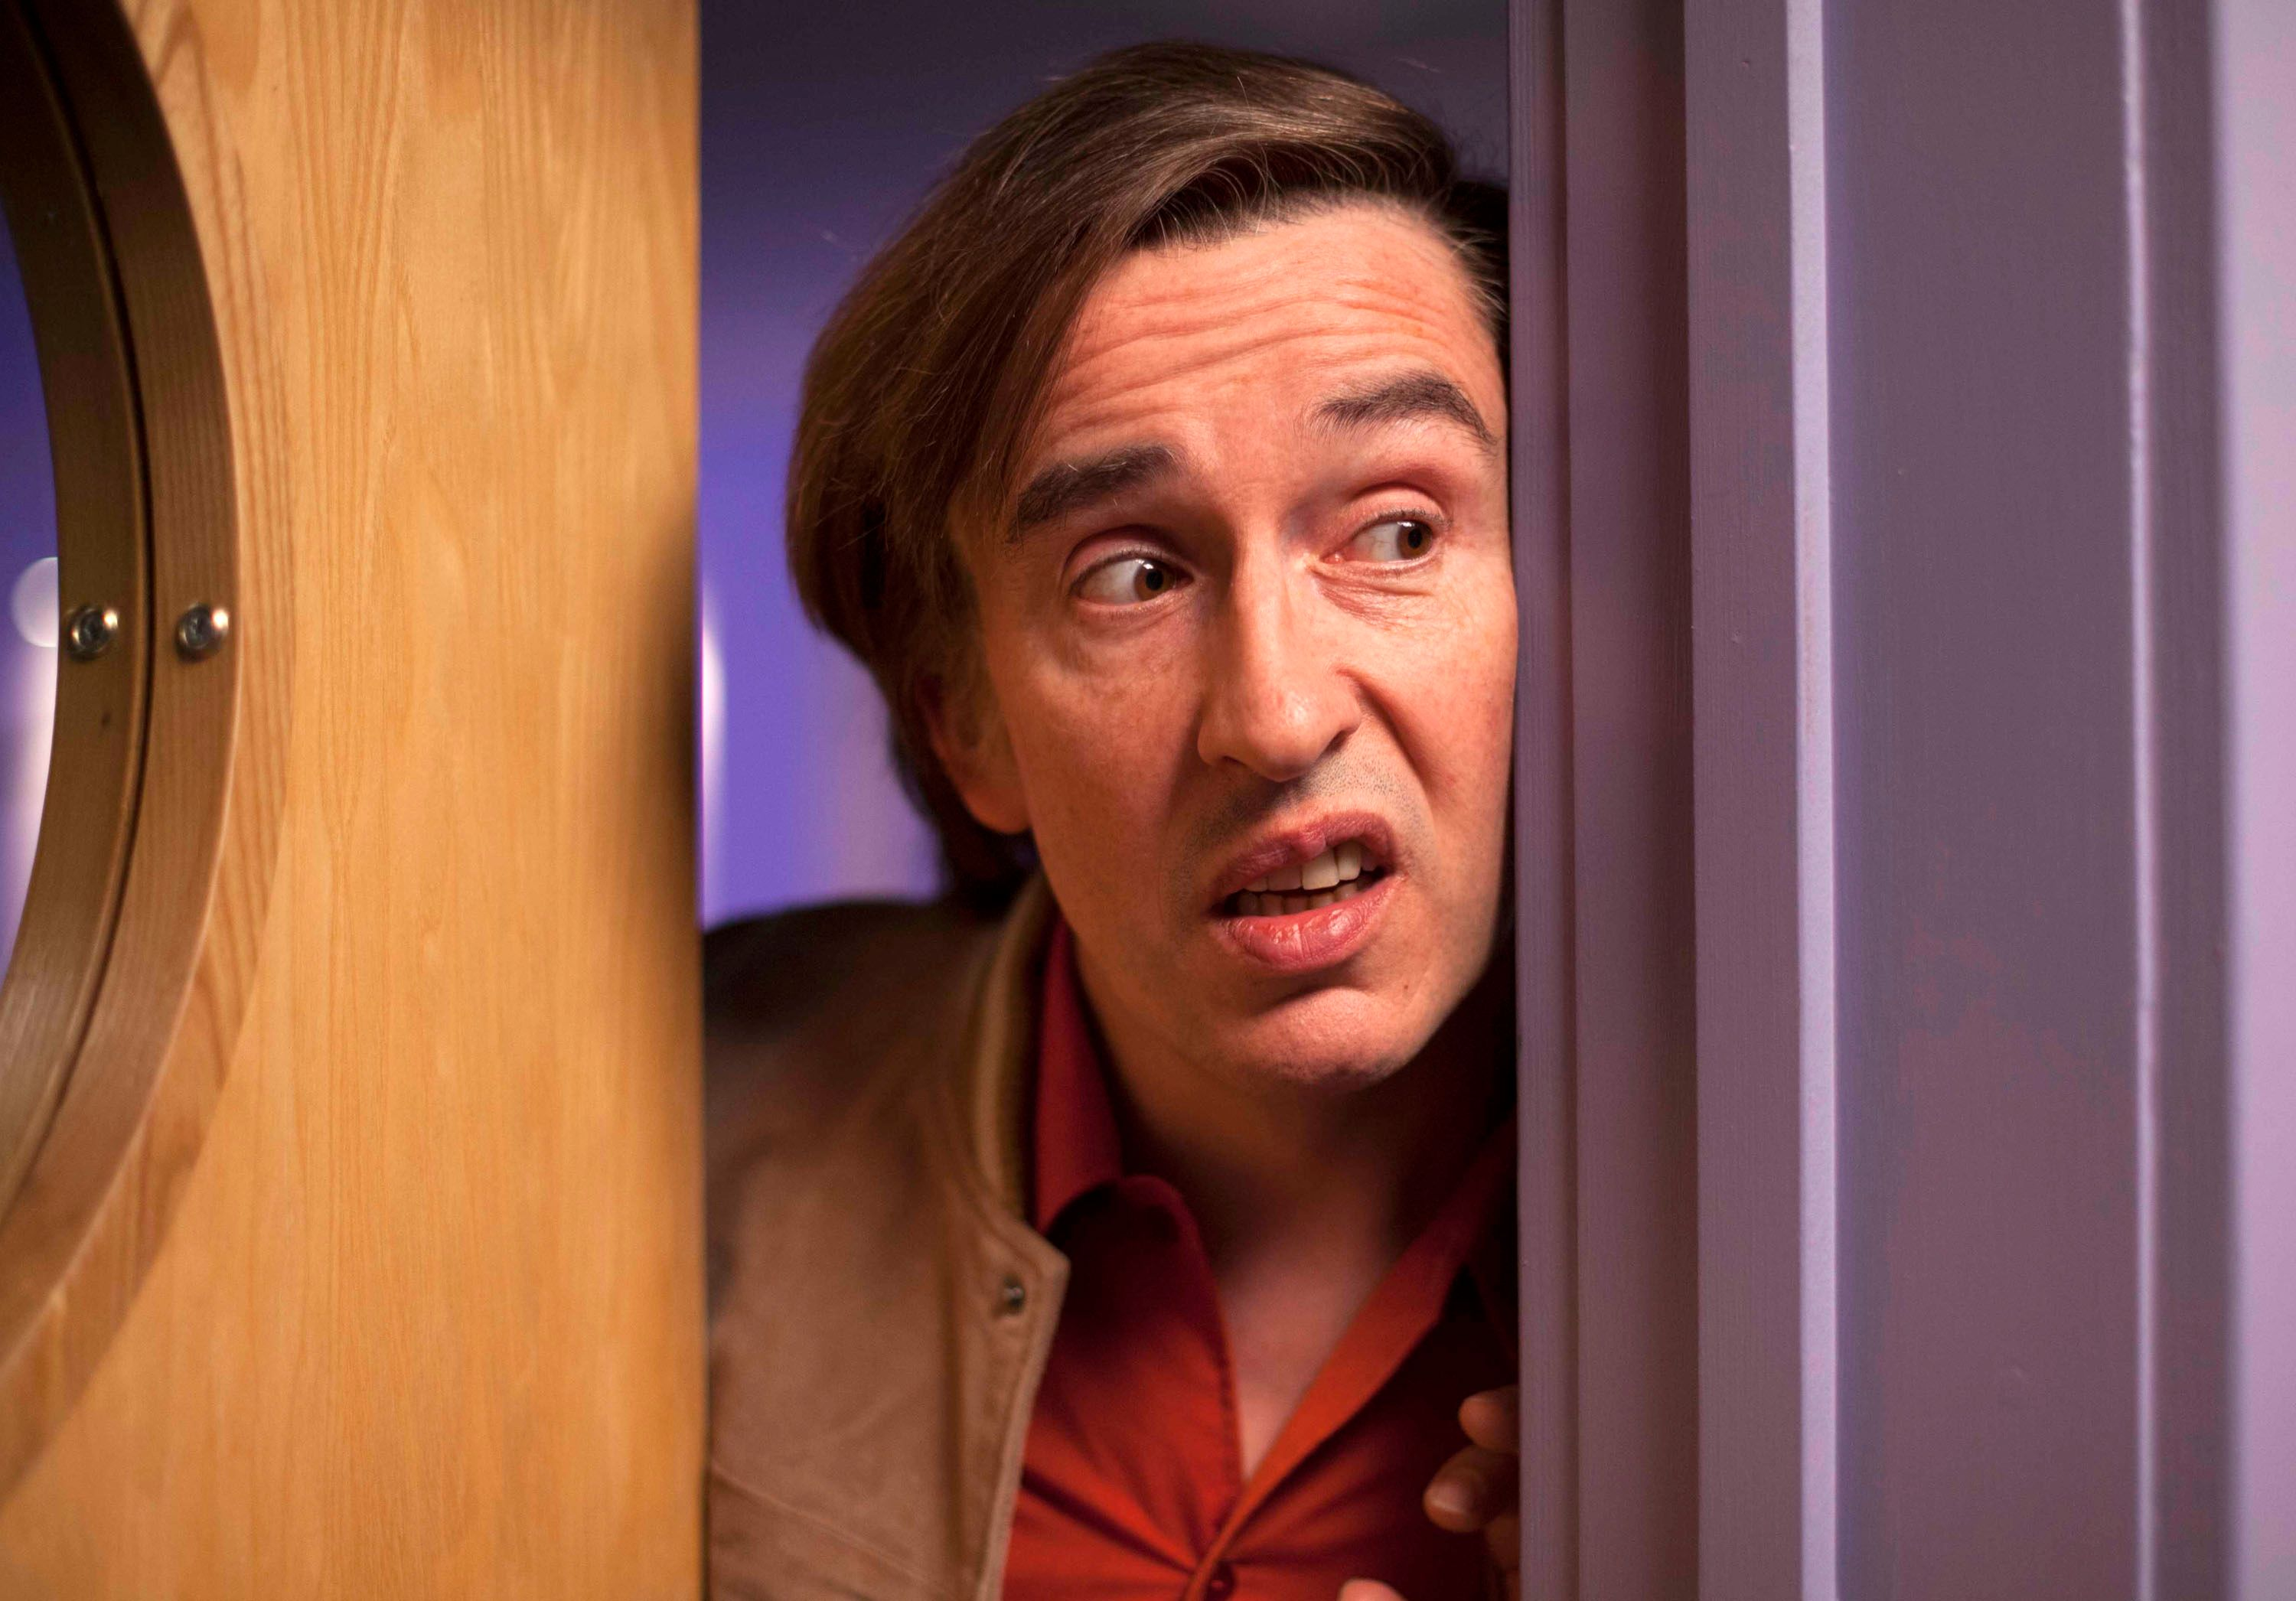 ALAN PARTRIDGE Interview: Declan Lowney Talks Sequel ...